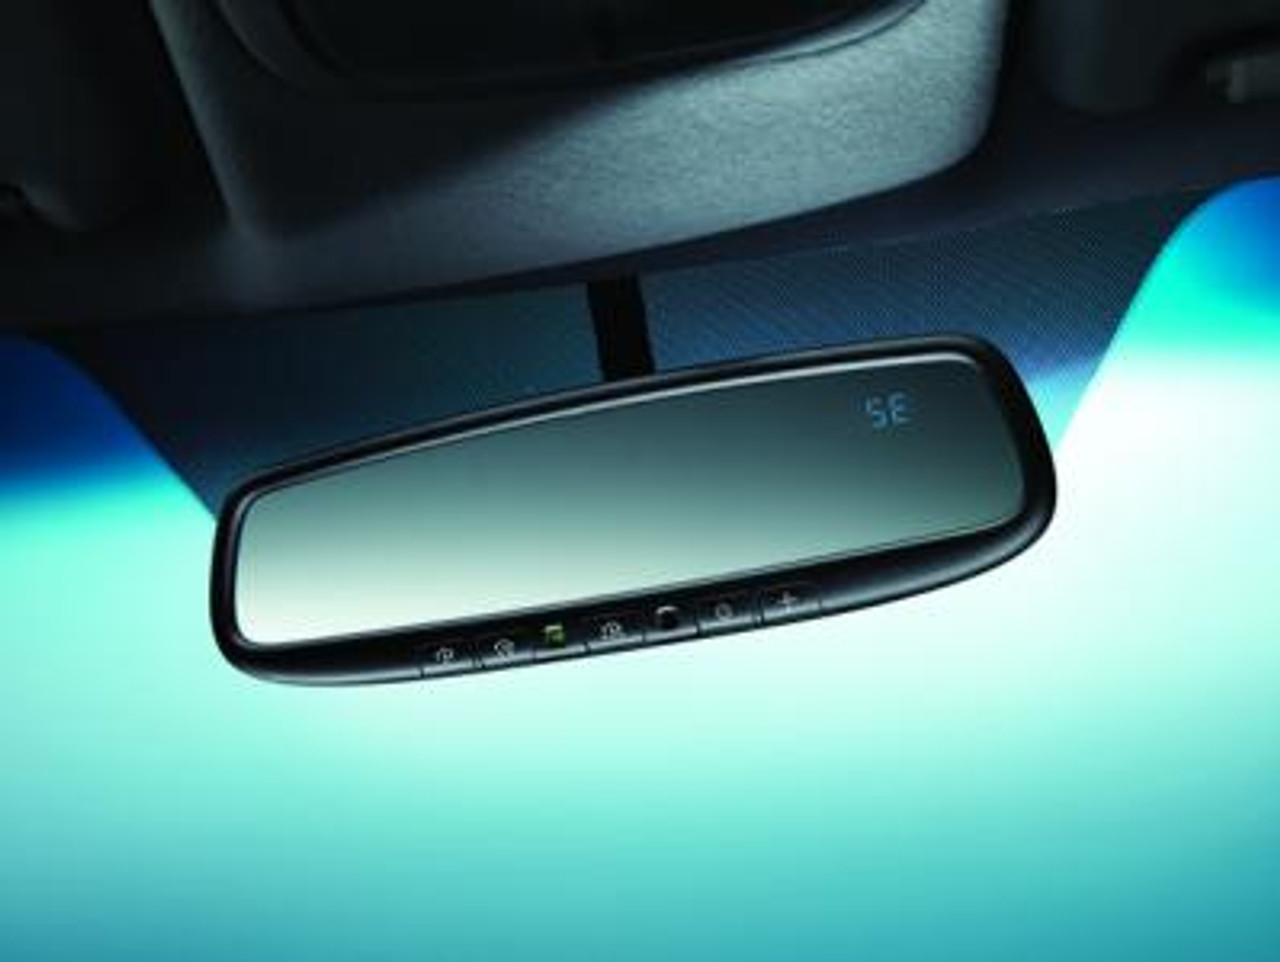 Kia Genuine Accessories U8620-00001 Auto Dimming Mirror with HomeLink and Compass Soul